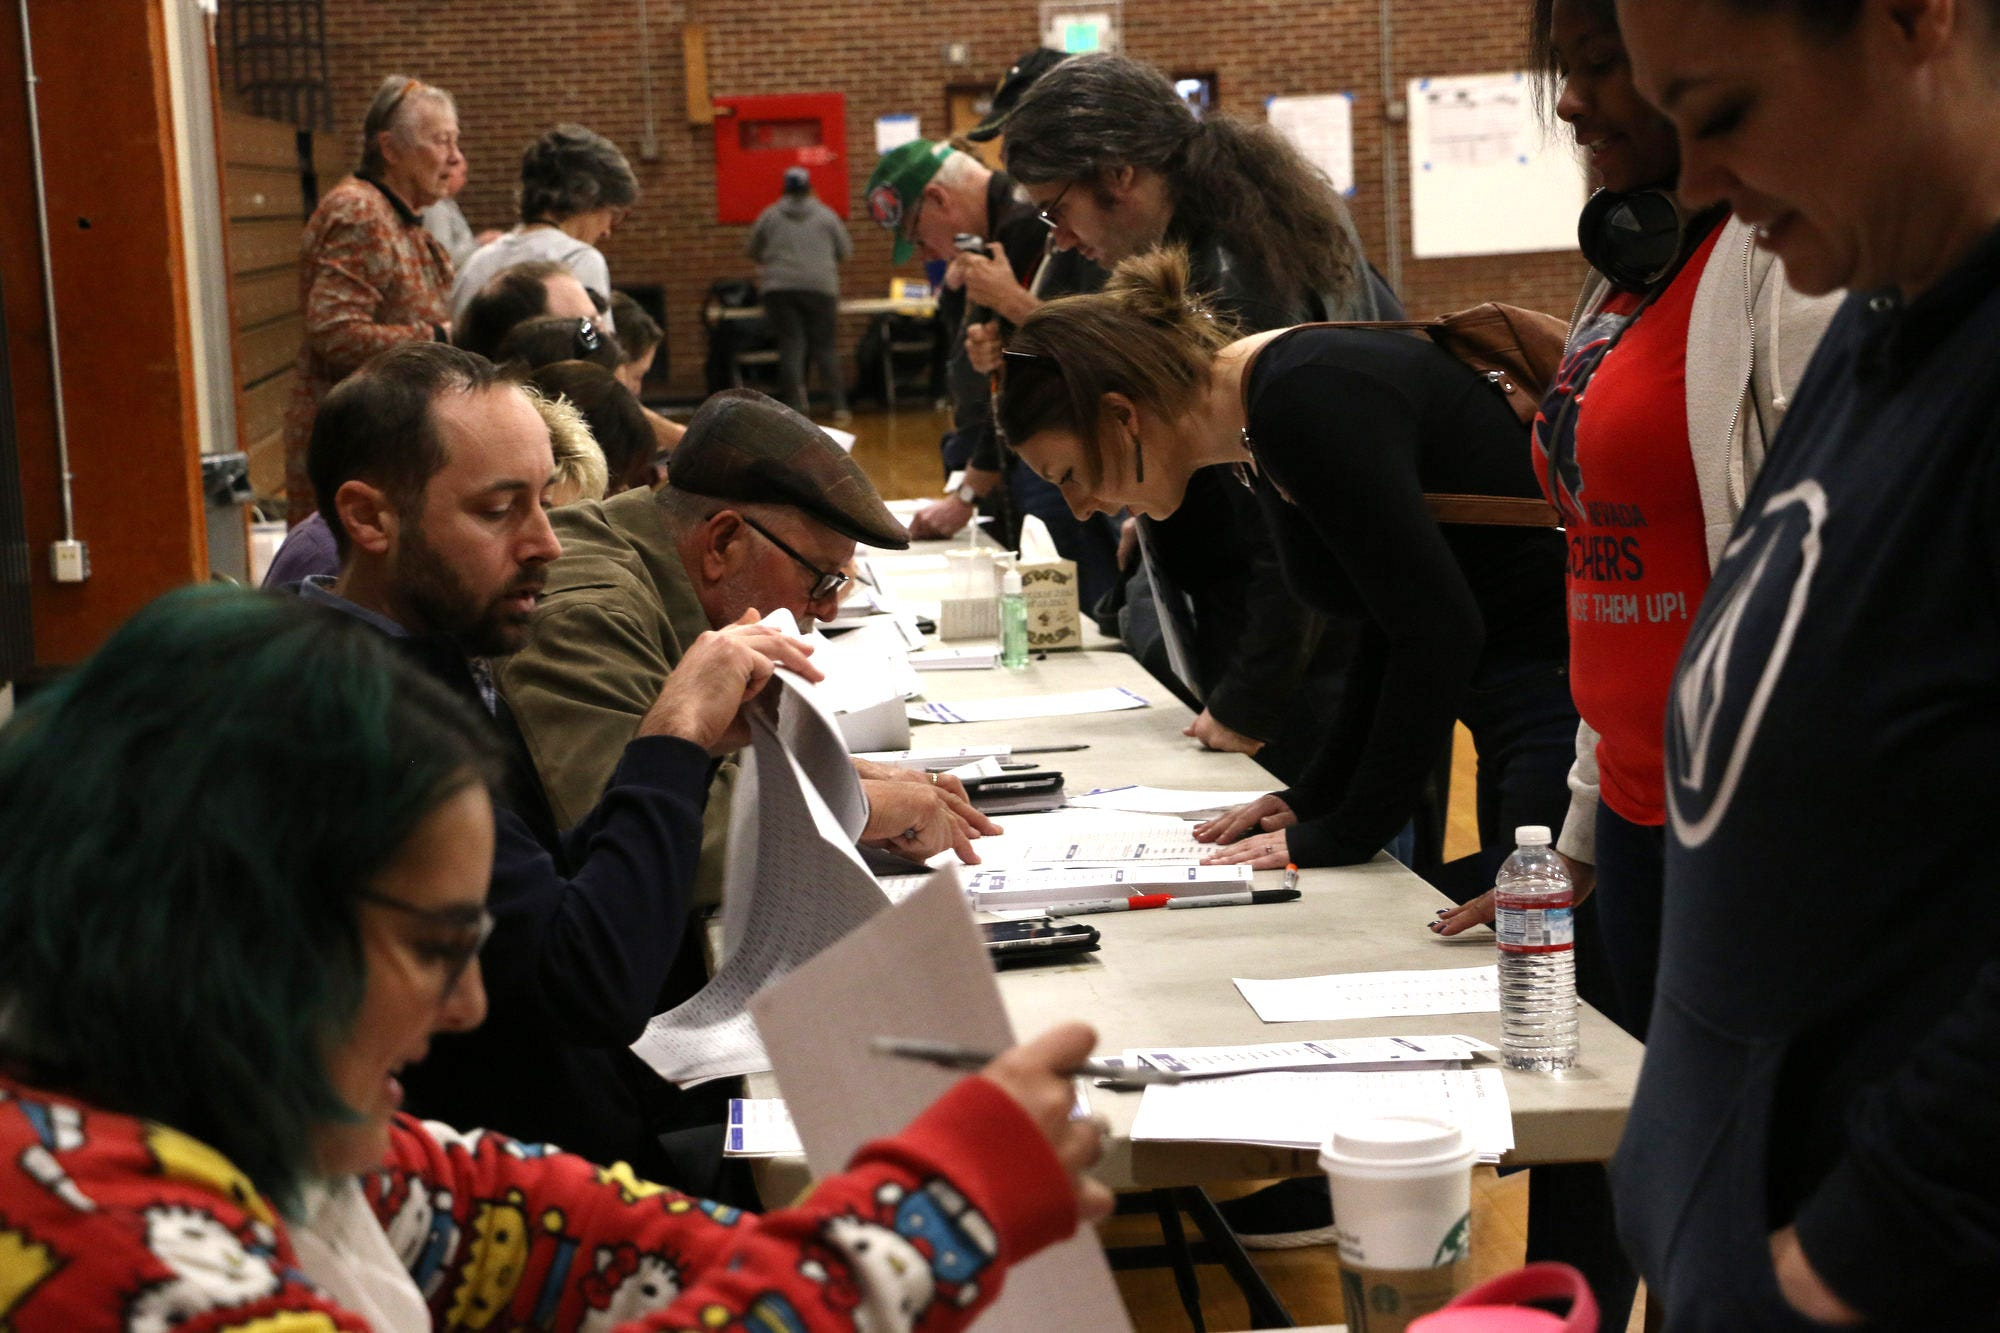 Voters gather at Sparks High School to participate in the 2020 Nevada Democratic caucus on Feb. 22, 2020.